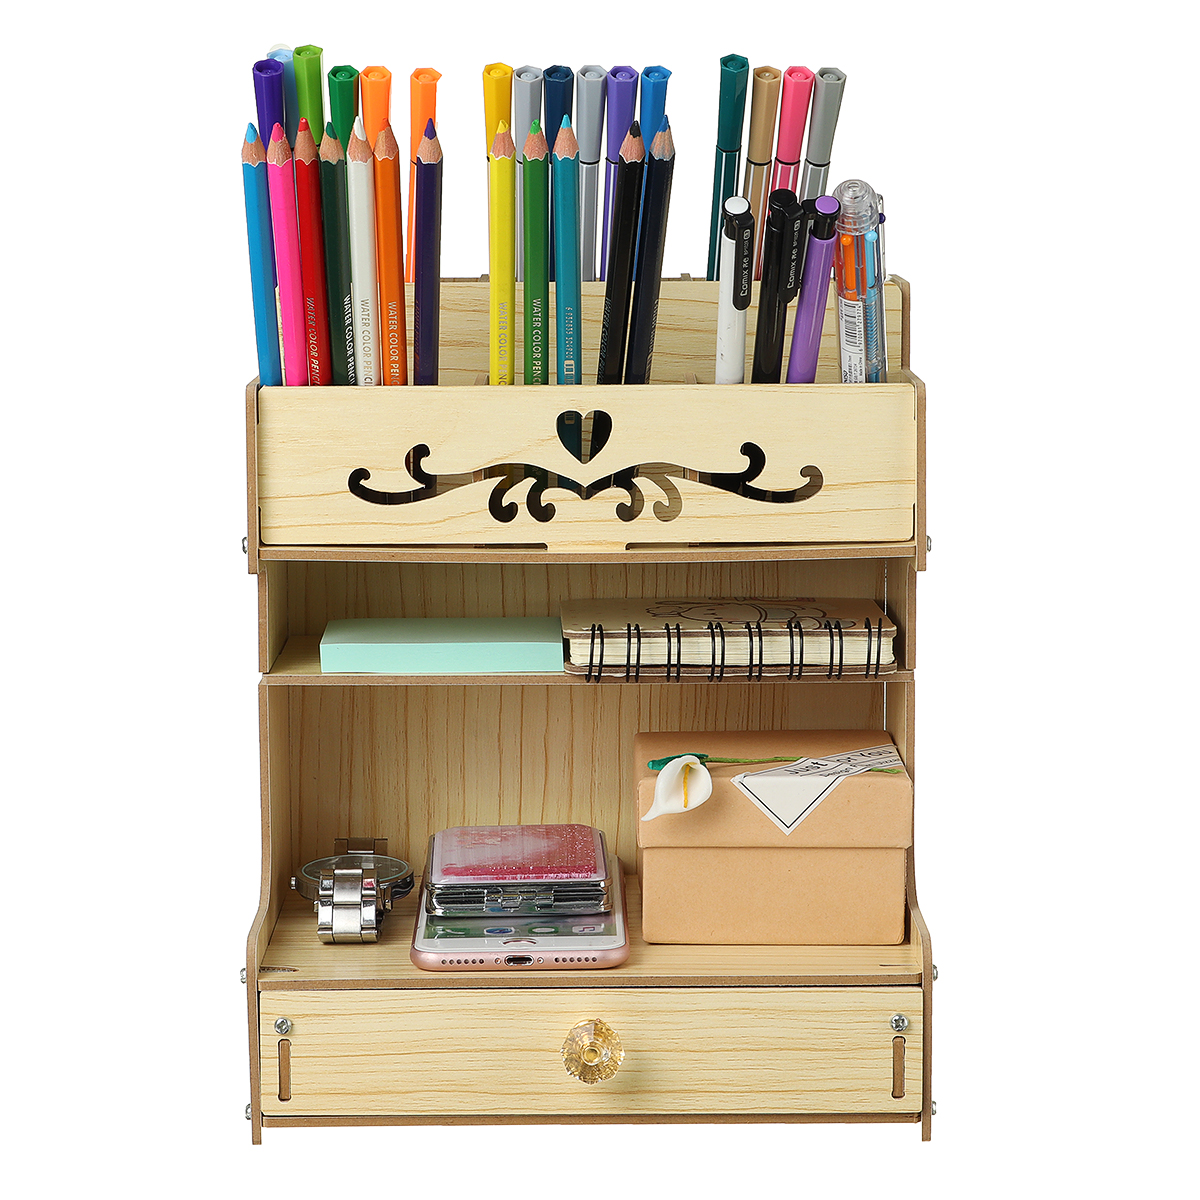 Wooden Office Desk Organizer Multi-Functional DIY Creative Pencil Holder Home Office Supply Brush Storage Rack